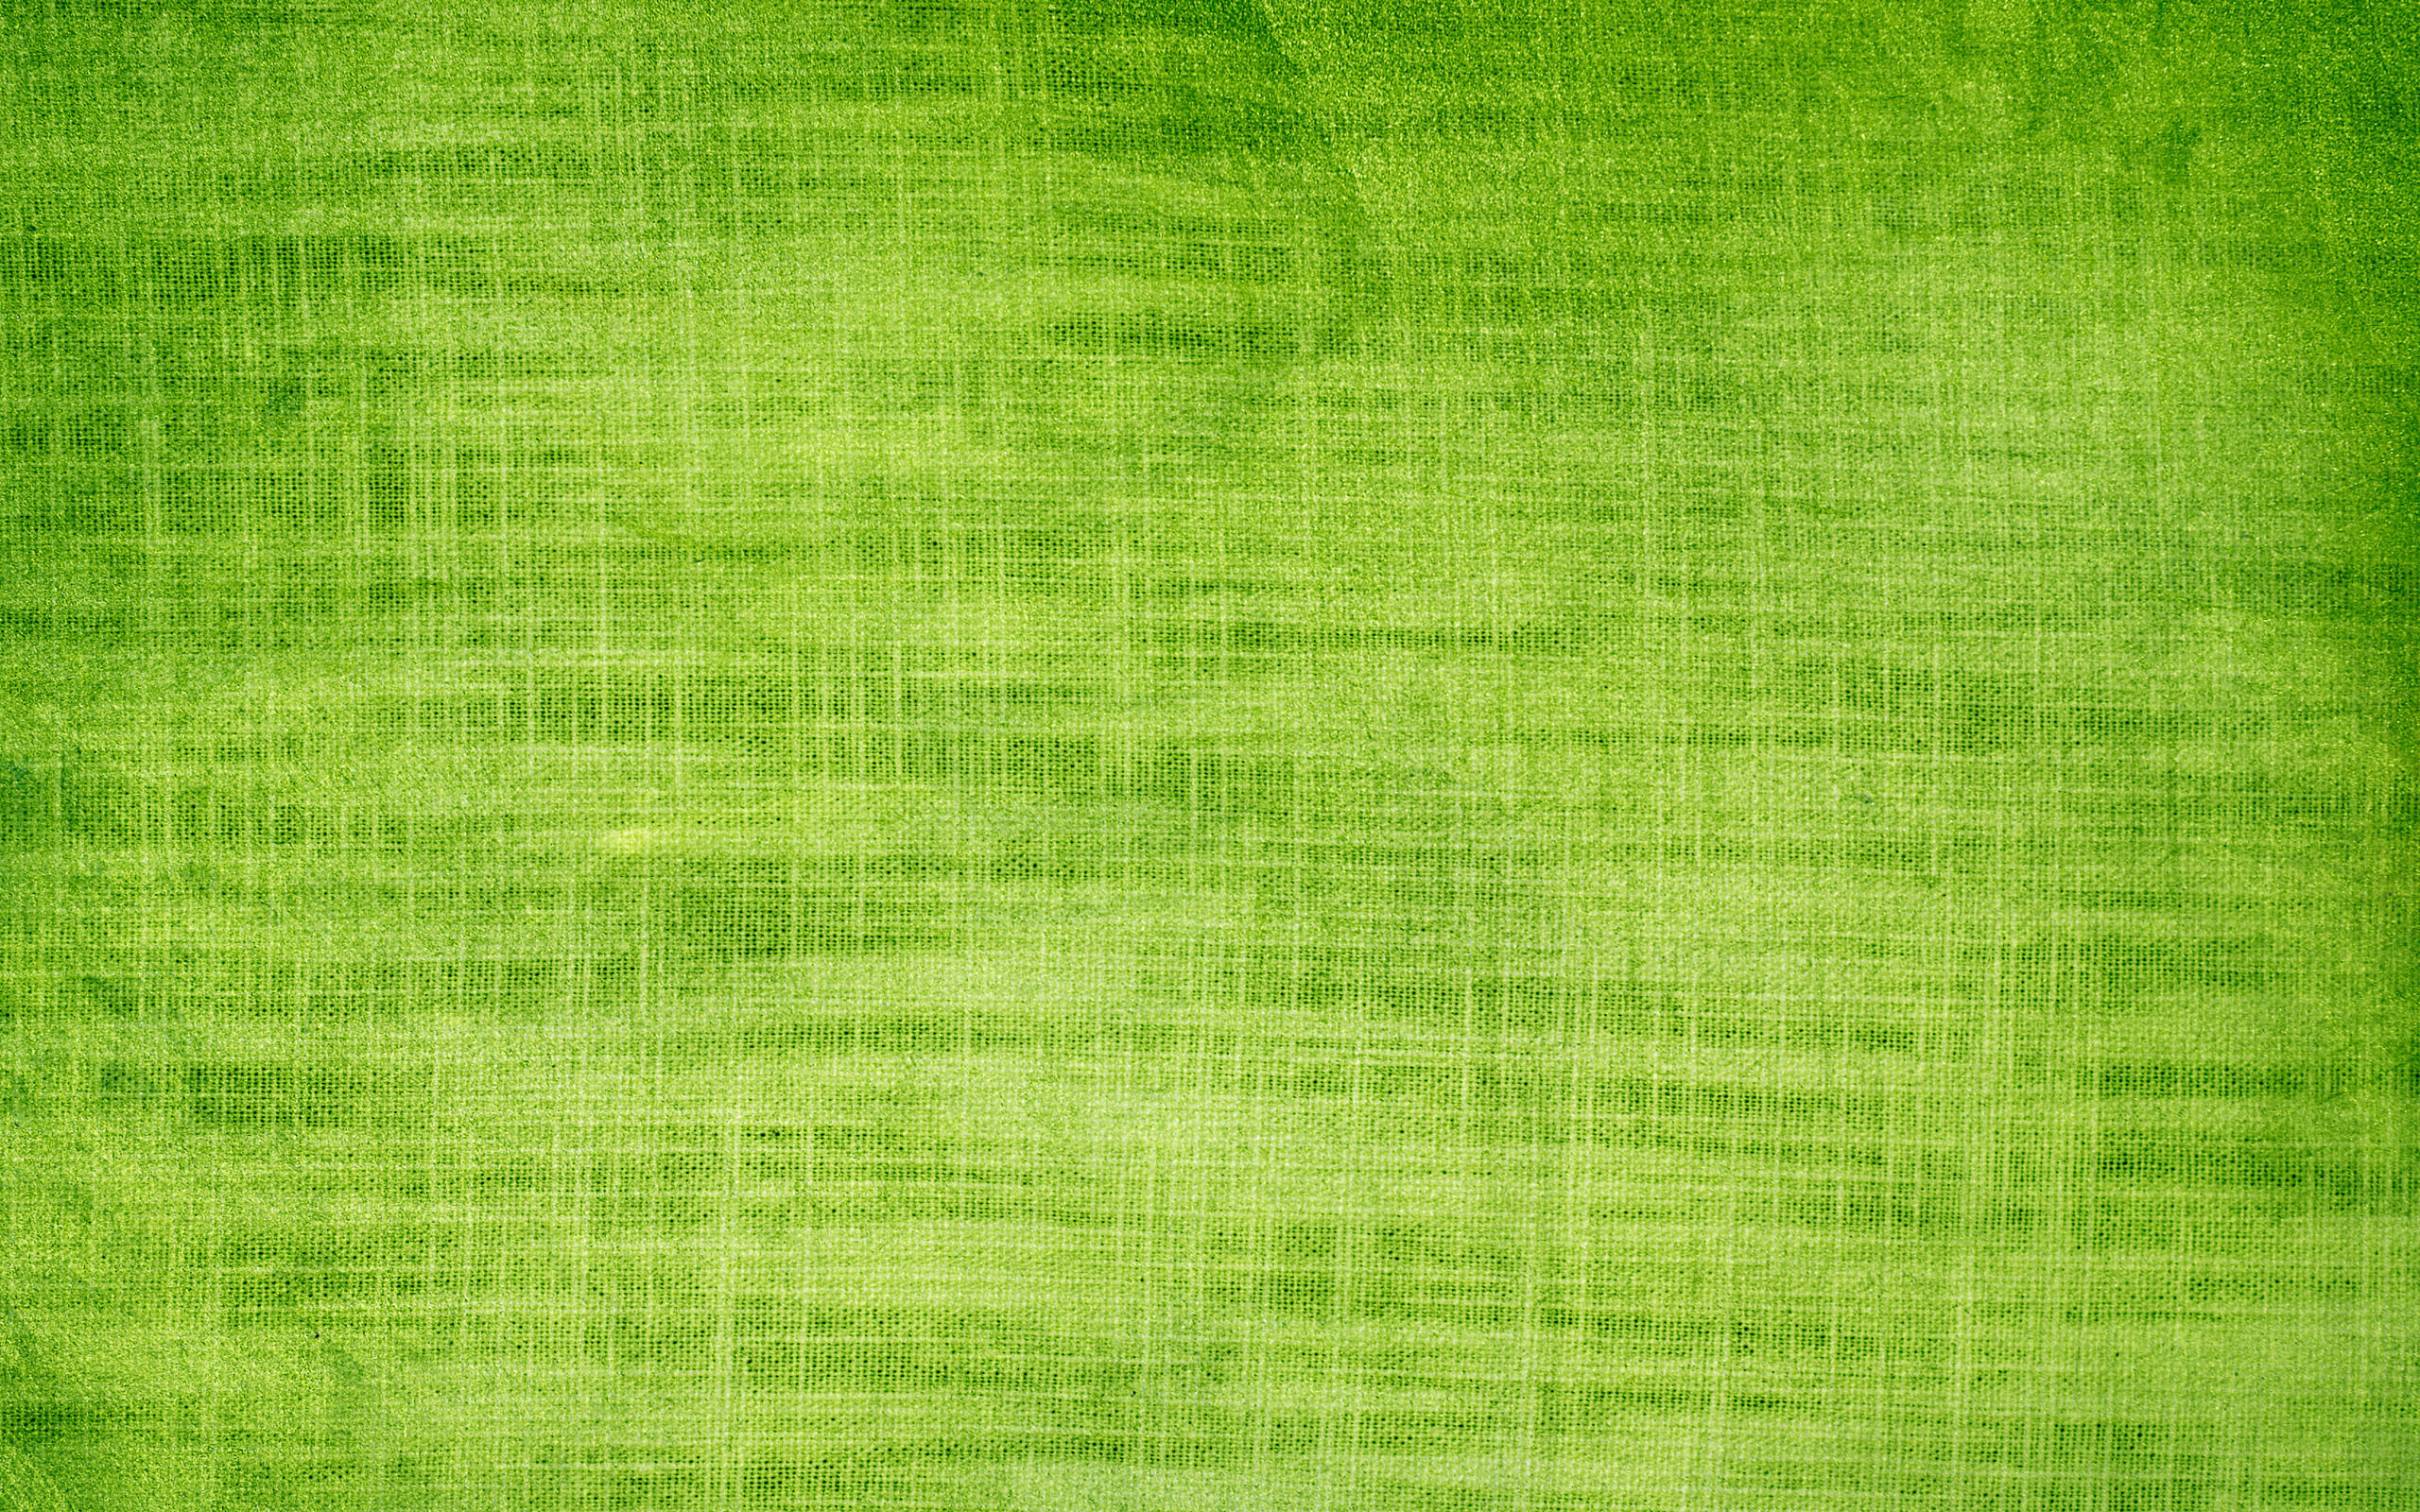 21+ Green Textures, Photoshop Textures, Patterns